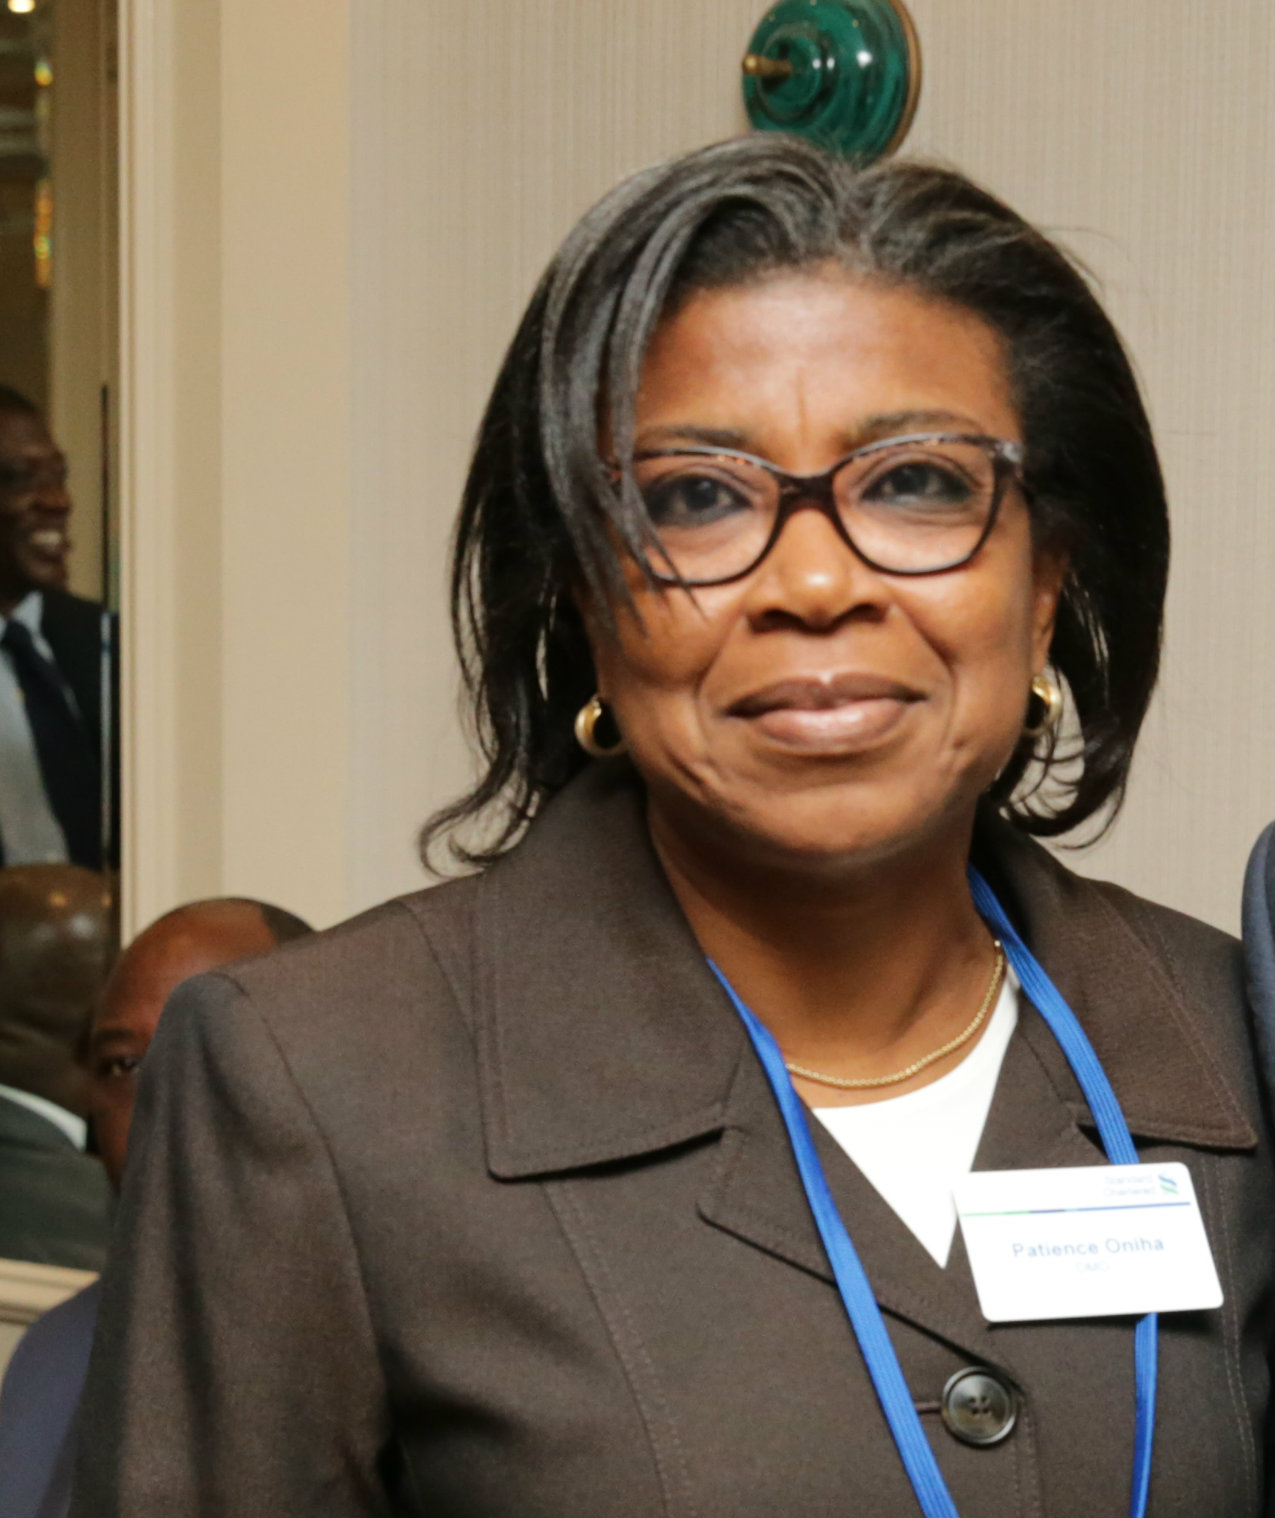 Photo of Nigeria's Debt Rose To N26.2tr By 2019 Q3, Plans N150bn Sukuk, Says DMO